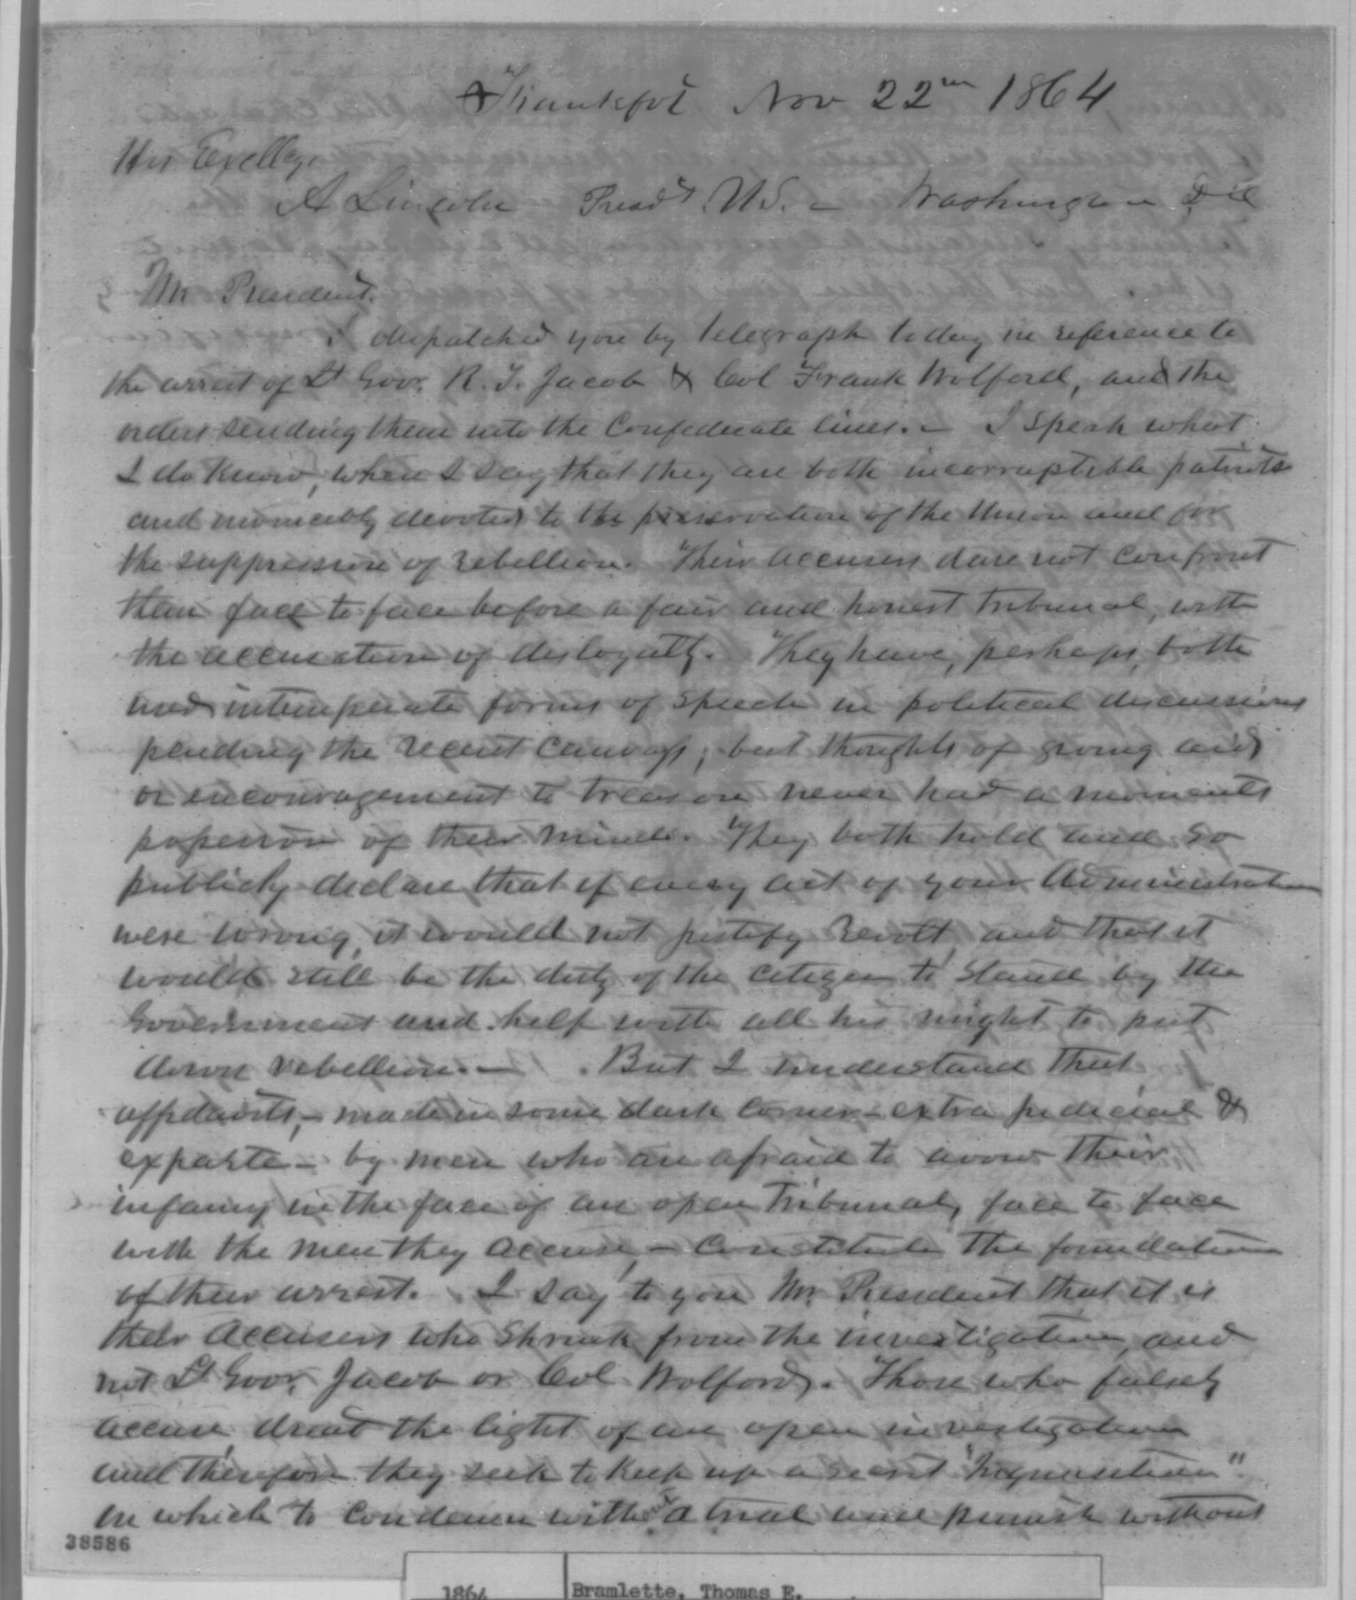 Thomas E. Bramlette to Abraham Lincoln, Tuesday, November 22, 1864  (Arrests of Richard Jacob and Frank Wolford)